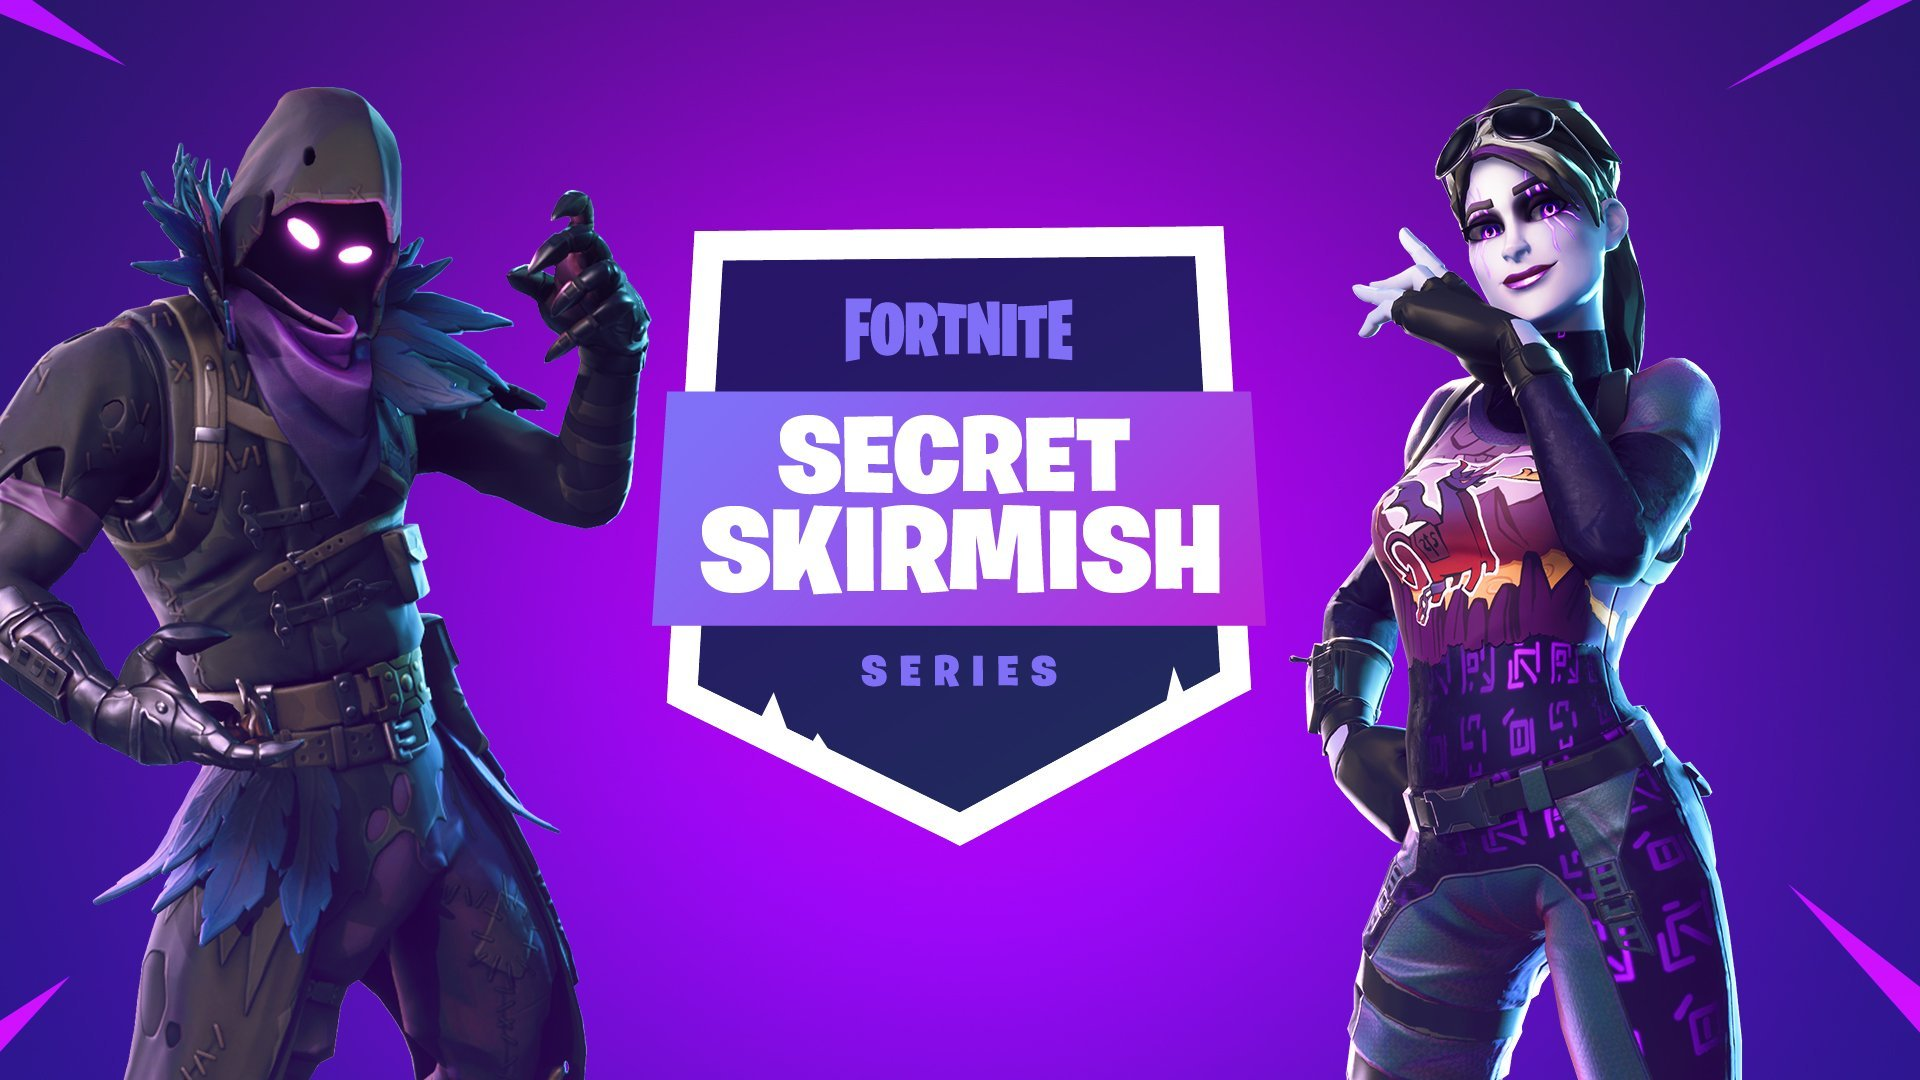 The Secret Skirmish event for Fortnite will go live on February 14.